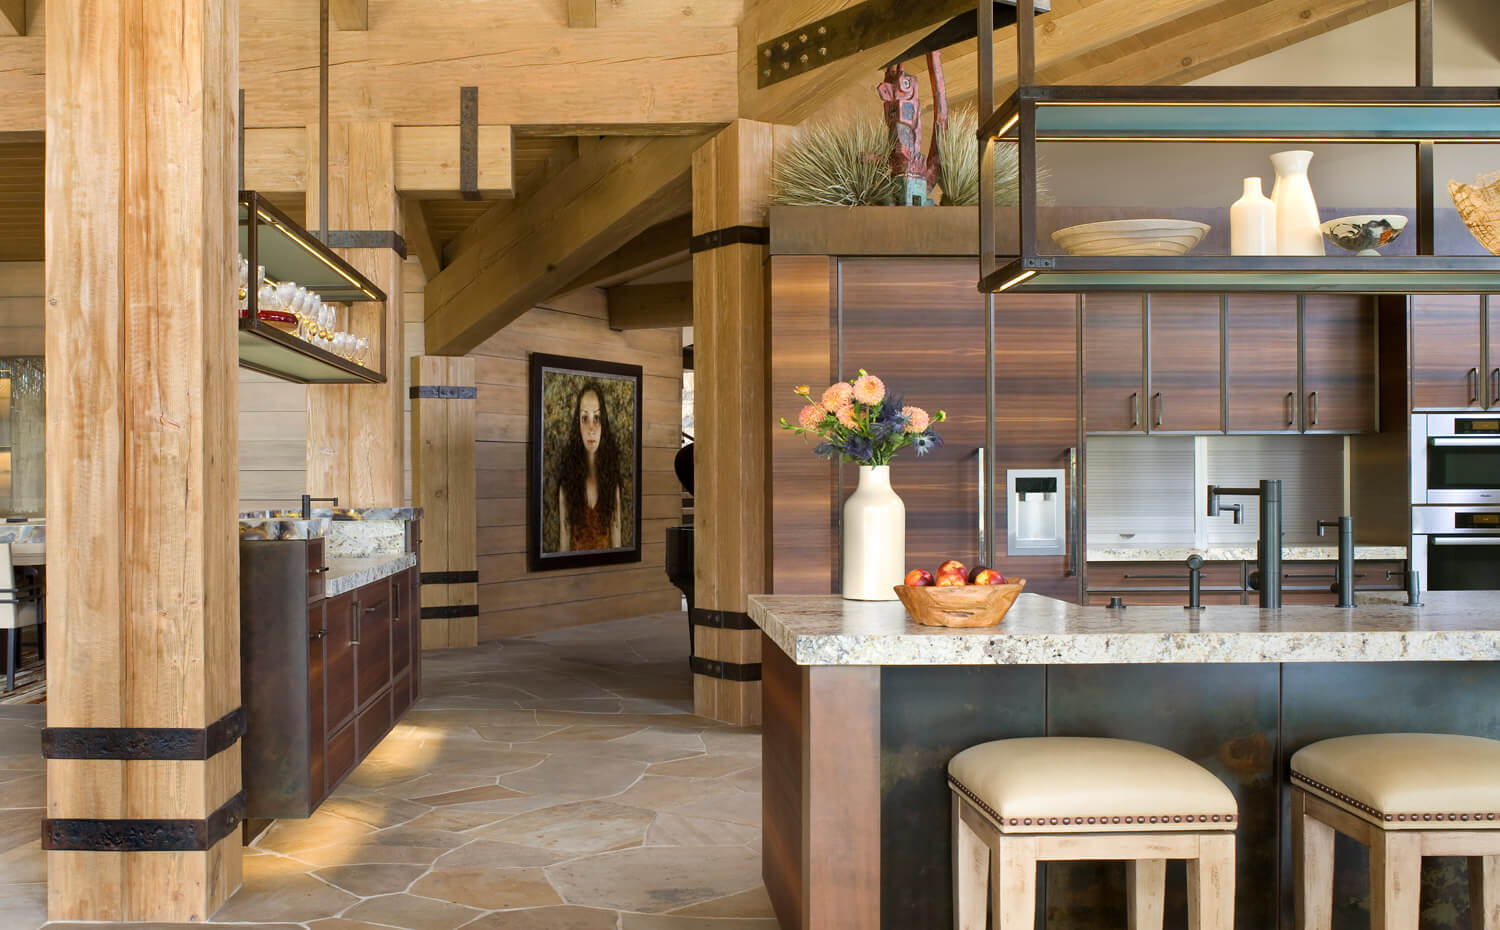 Kitchen Design Showroom Denver Co Exquisite Kitchen Design Denver Design District